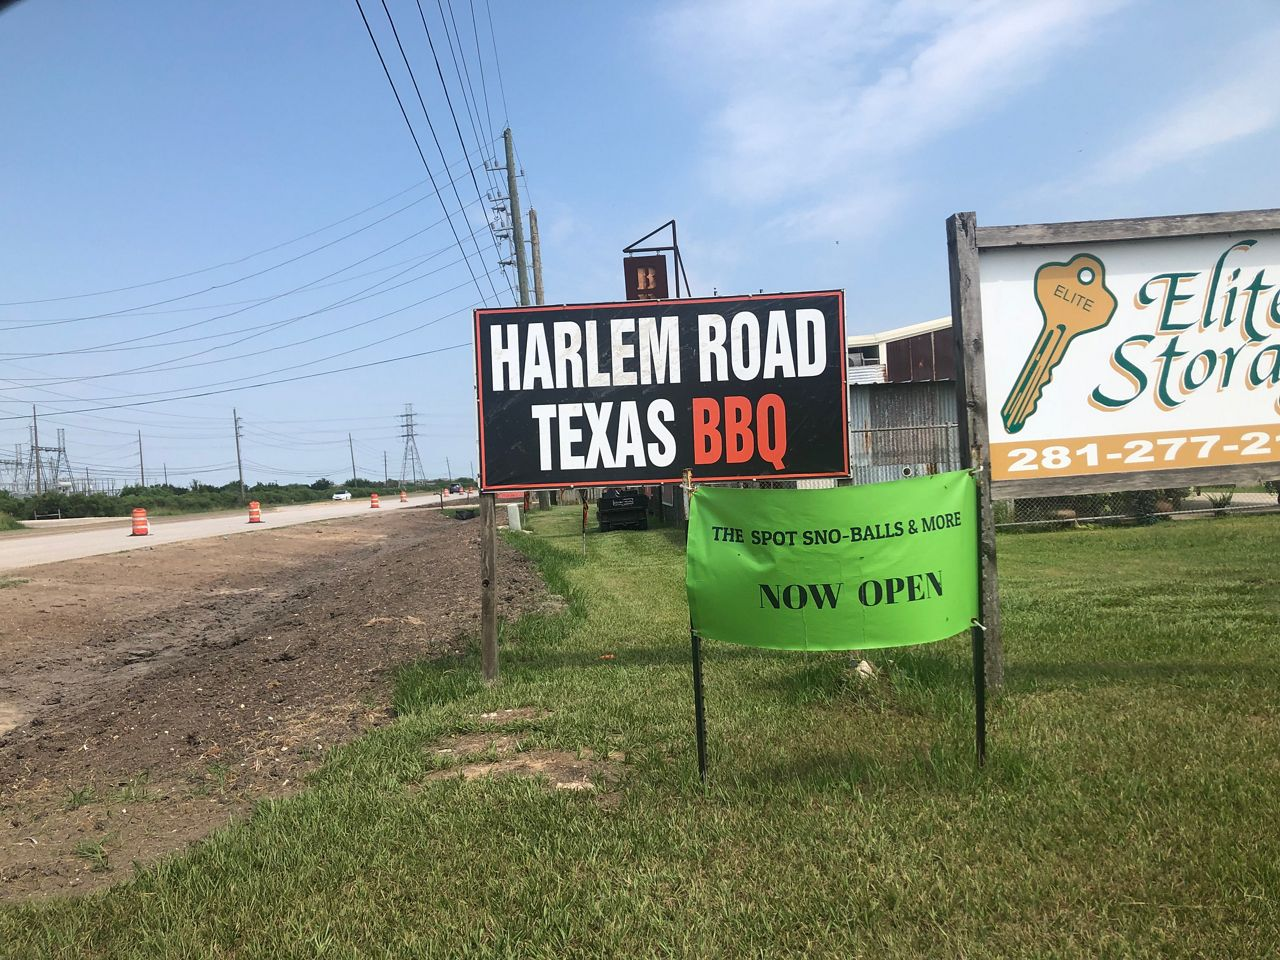 Photo shows signs neat Road Texas Barbecue. (Bryan Boes/Spectrum News)